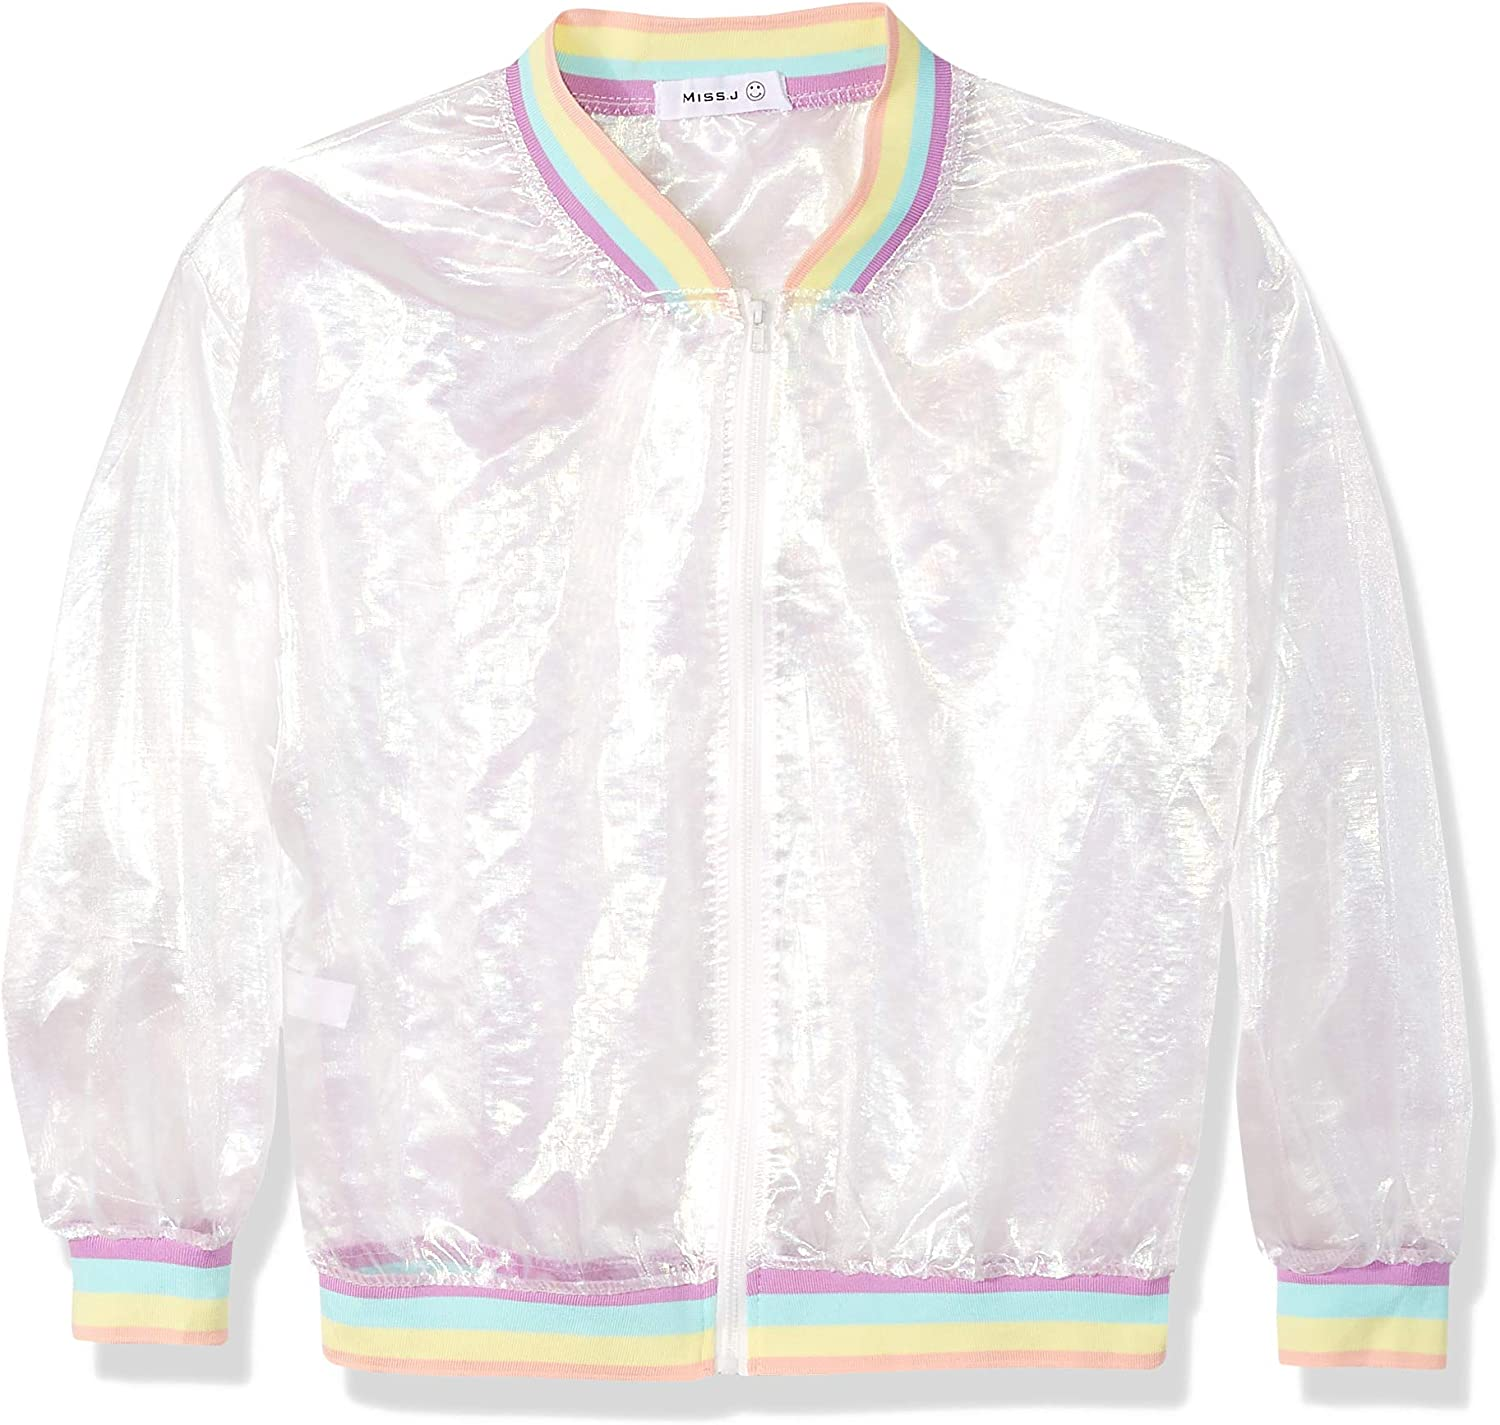 Women Girls Holographic Rainbow Jacket Iridescent See Through Mesh Jacket Sun-Proof Coat Rave Party Festival Outfit